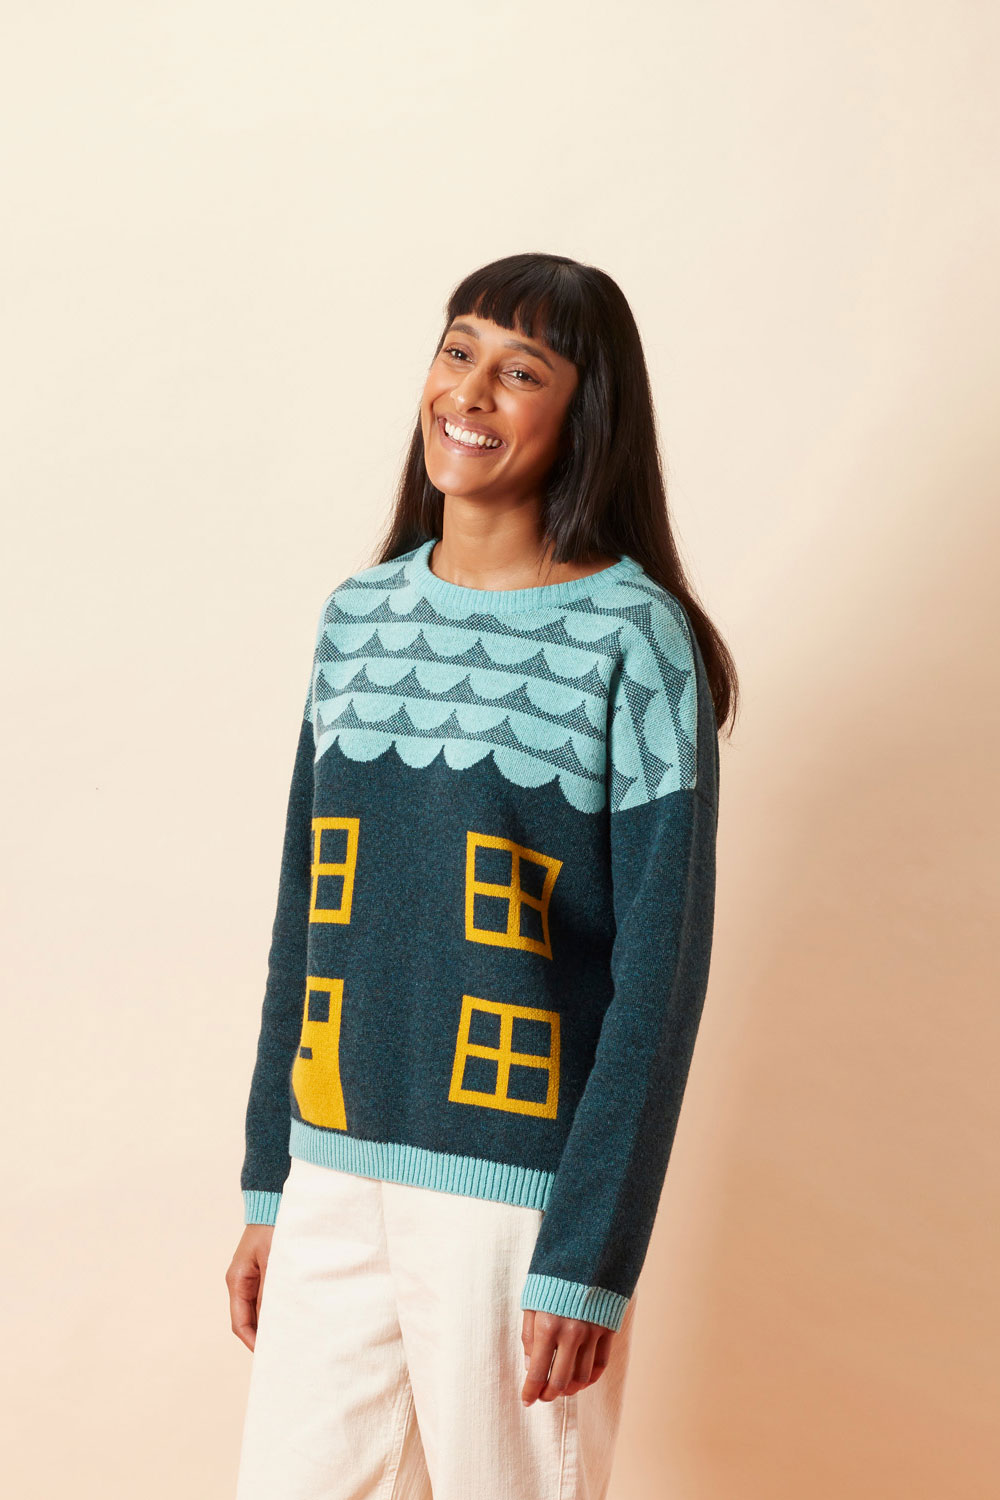 Bothy Sweater - Blue - Donna Wilson